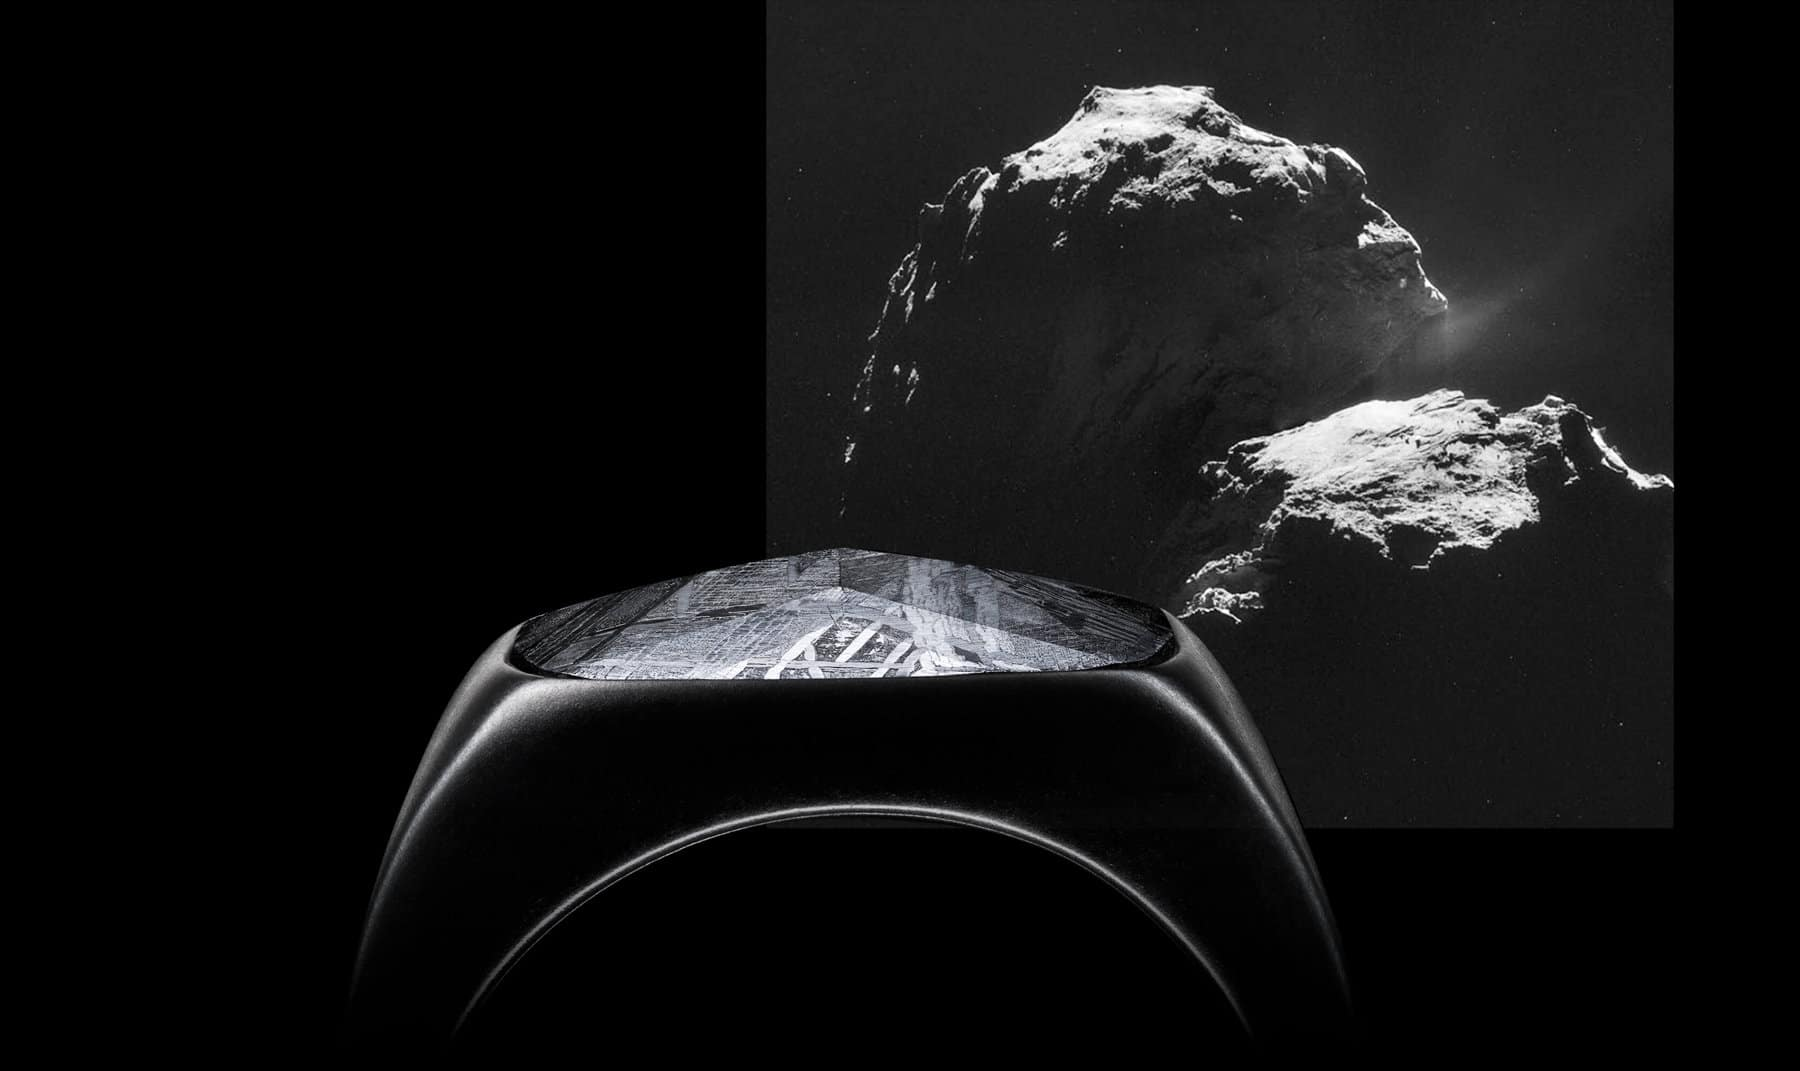 A photo collage juxtaposes a close-up color photo of a David Yurman ring in black titanium with meteorite with a black-and-white photo of dramatically lit meteorites against a starry night sky.